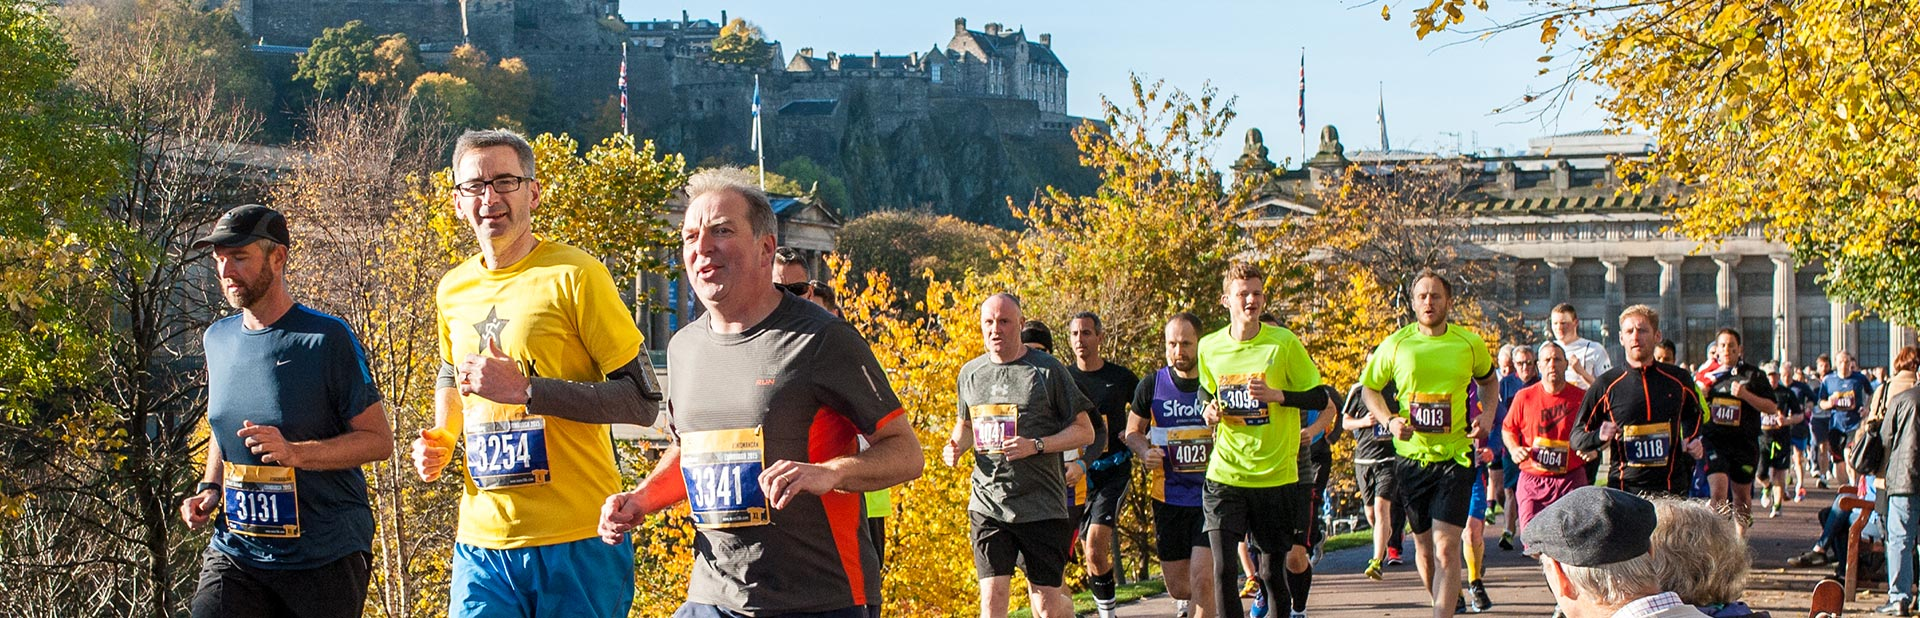 Mens10K_Website_Sliders_Edinburgh